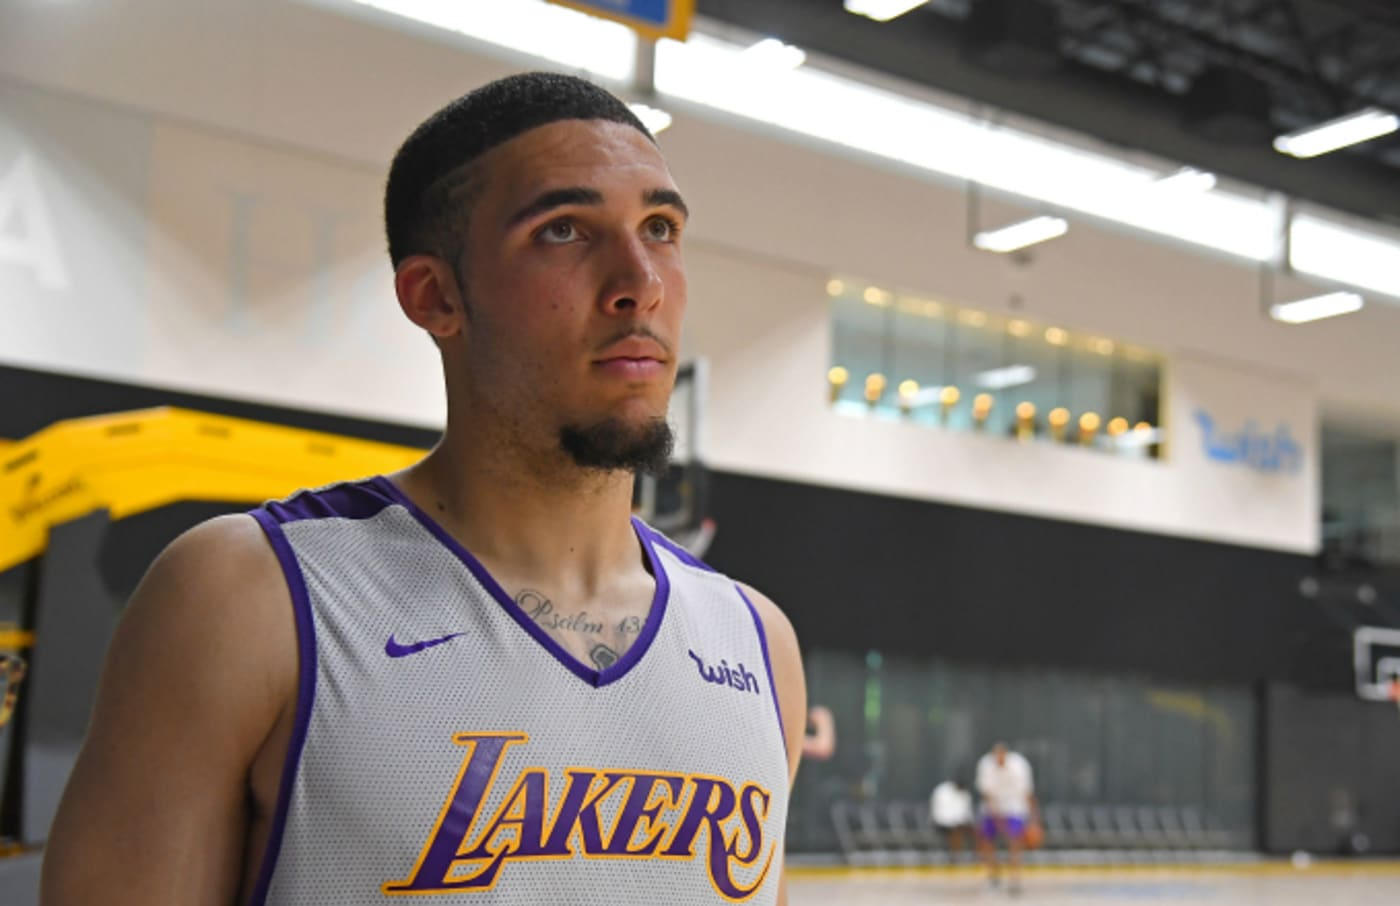 LiAngelo Ball walks on the court during the Los Angeles Lakers 2018 NBA Pre Draft Workout